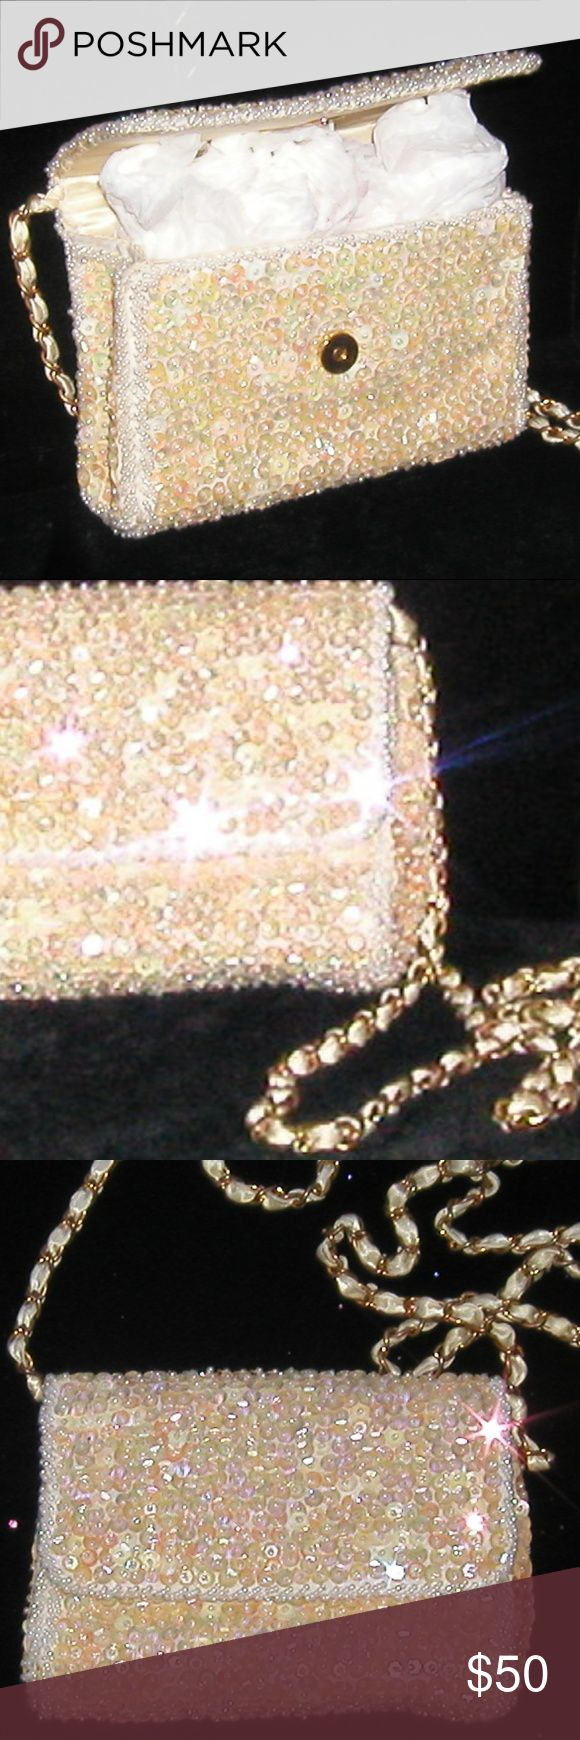 Special Occasion Bag/Purse Iridescence Cocktail 38 Special Occasion Bag/Purse iridescence to reflect the hue of just about any color.  Wearable Artistry... it's the details that makes it stand out from the rest...Evening shoulder or hand envelope Bag/Purse with long shoulder gold & satin twist rope. Fully lined for that Special Occasion when everything must look perfect. Never or barely used floor samples.   Only one of this kind $50.00...sold for $80    Don't wait until it's…